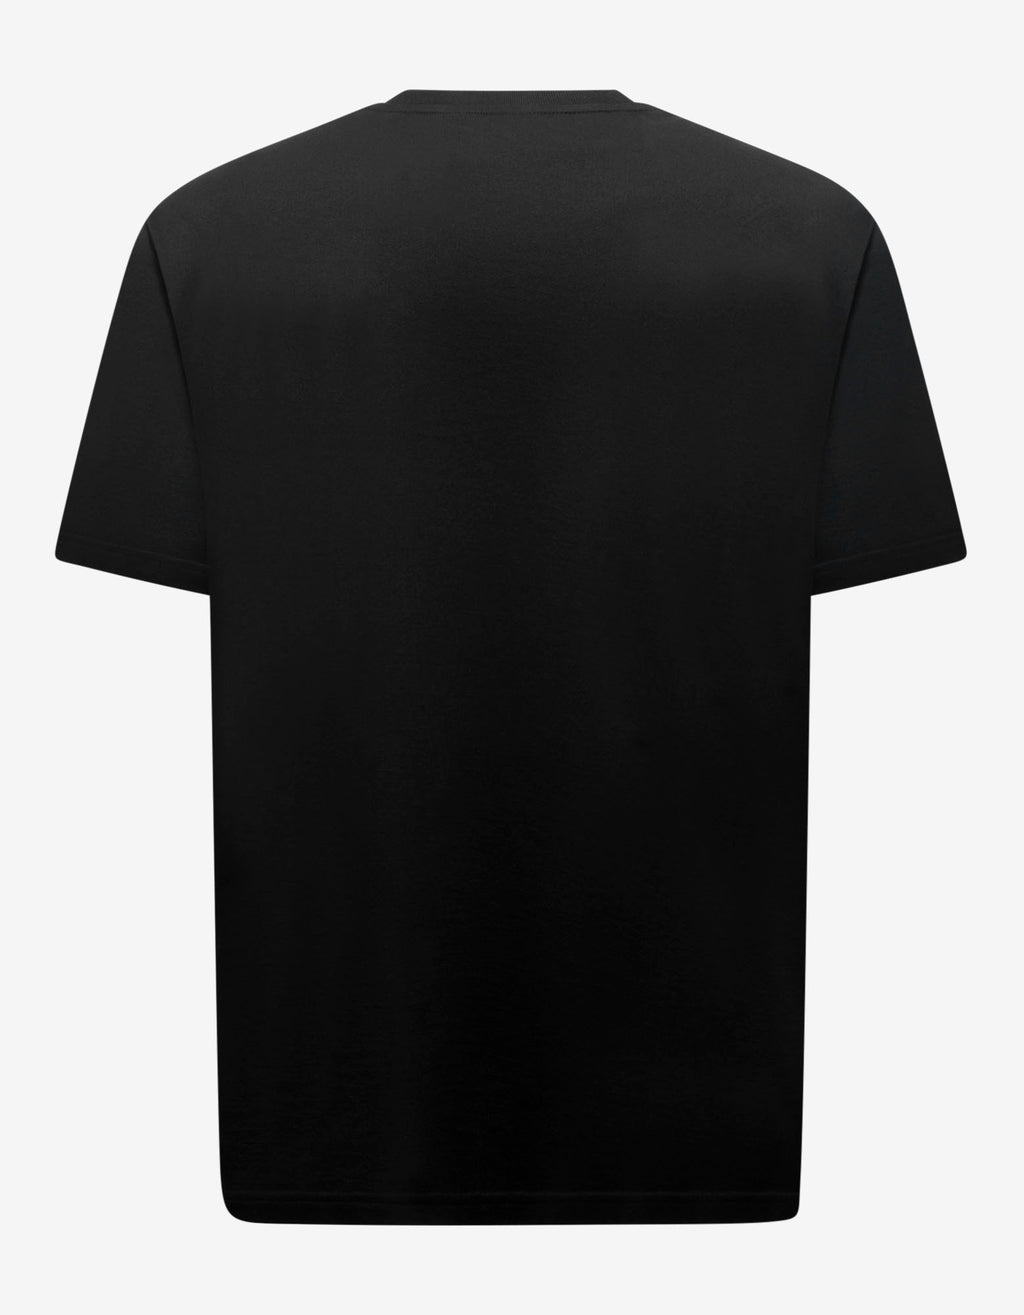 Black Studio Homme T-Shirt